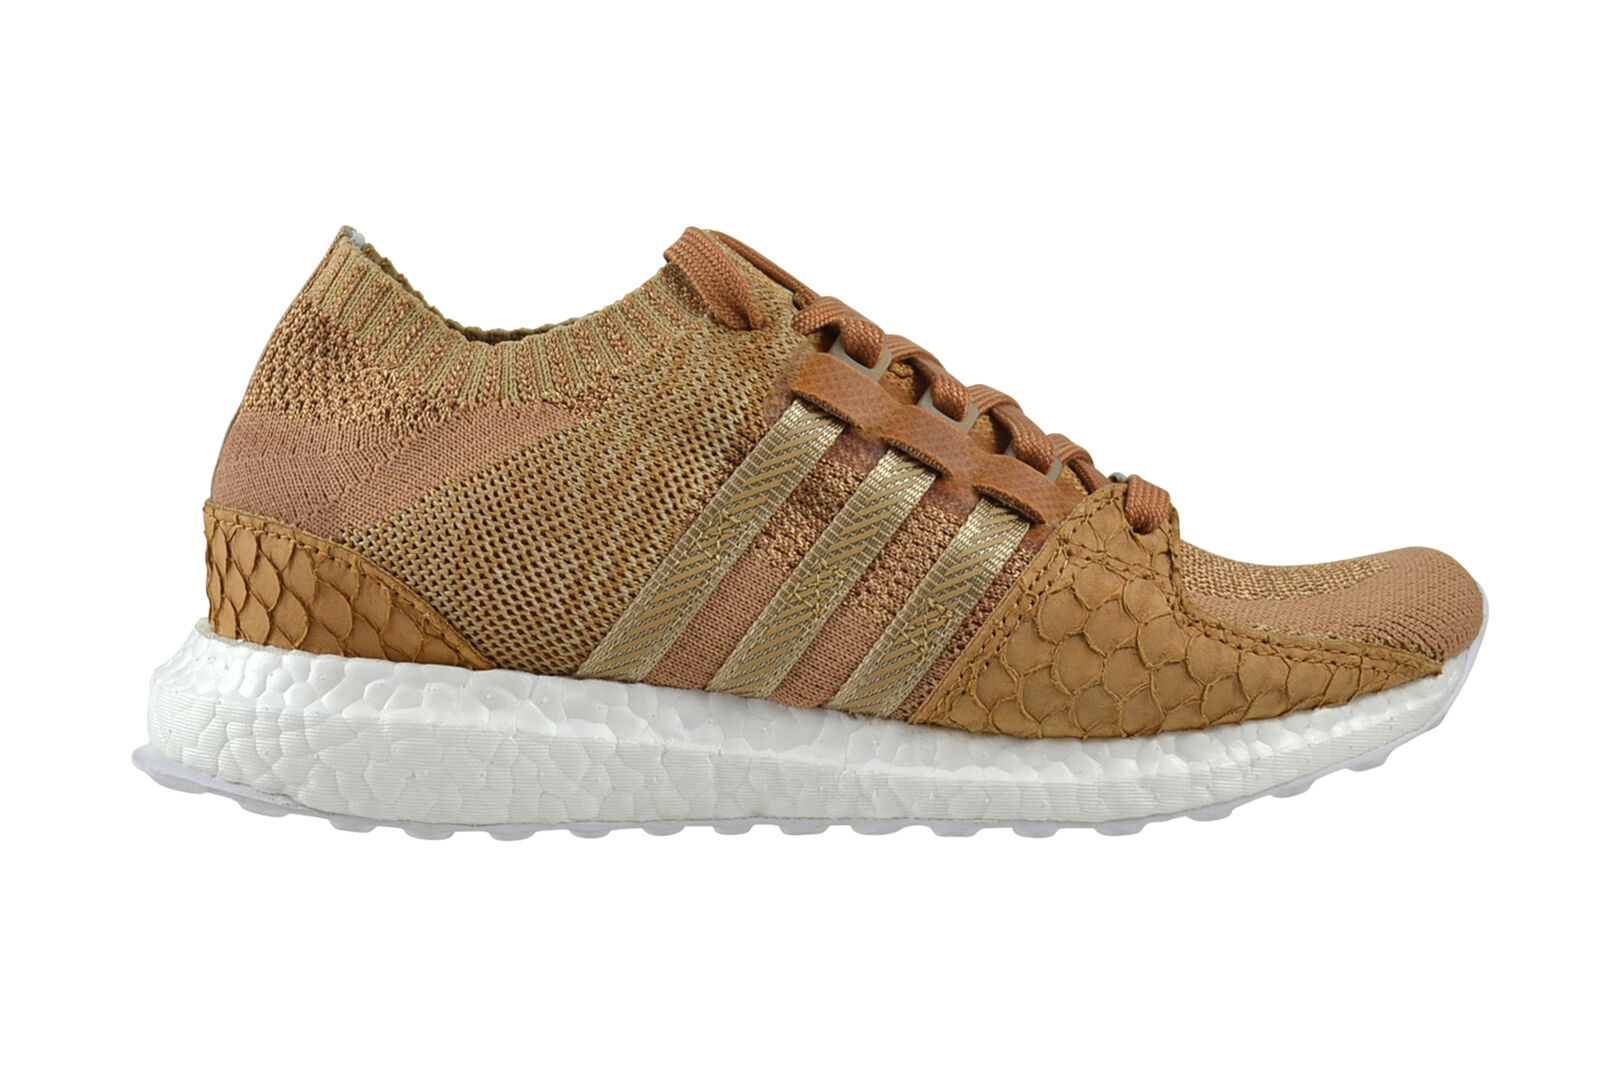 Adidas Equipment Support Ultra PK King Push Bodega Baby Sneaker brown DB0181